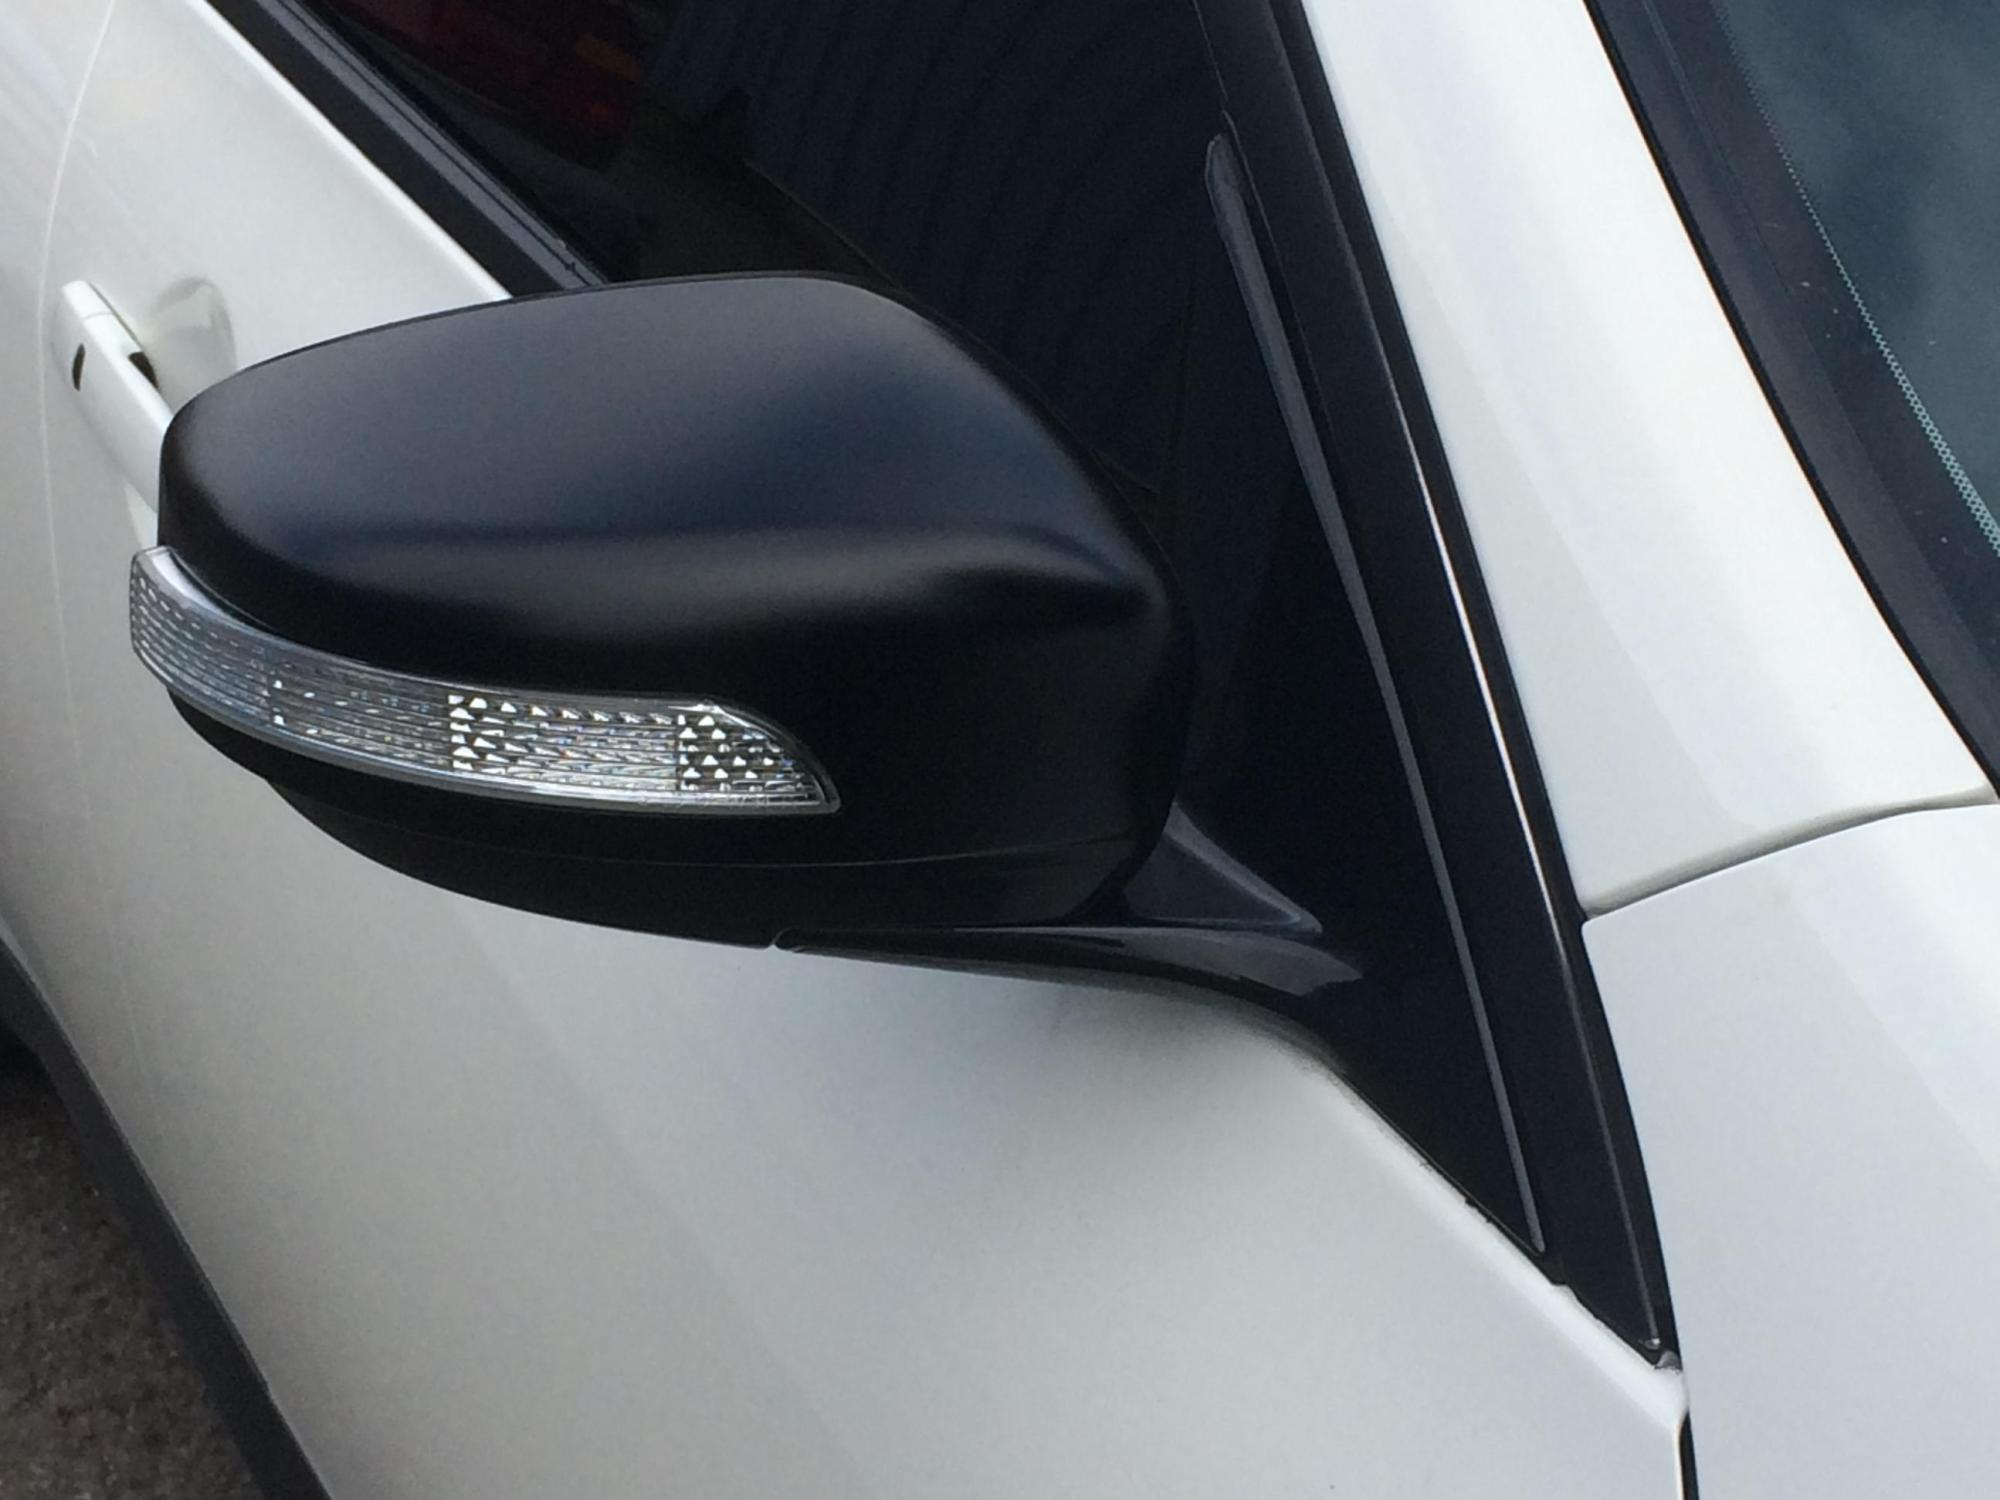 hight resolution of img 3132 jpg infiniti g37 led side mirror cover should i try it